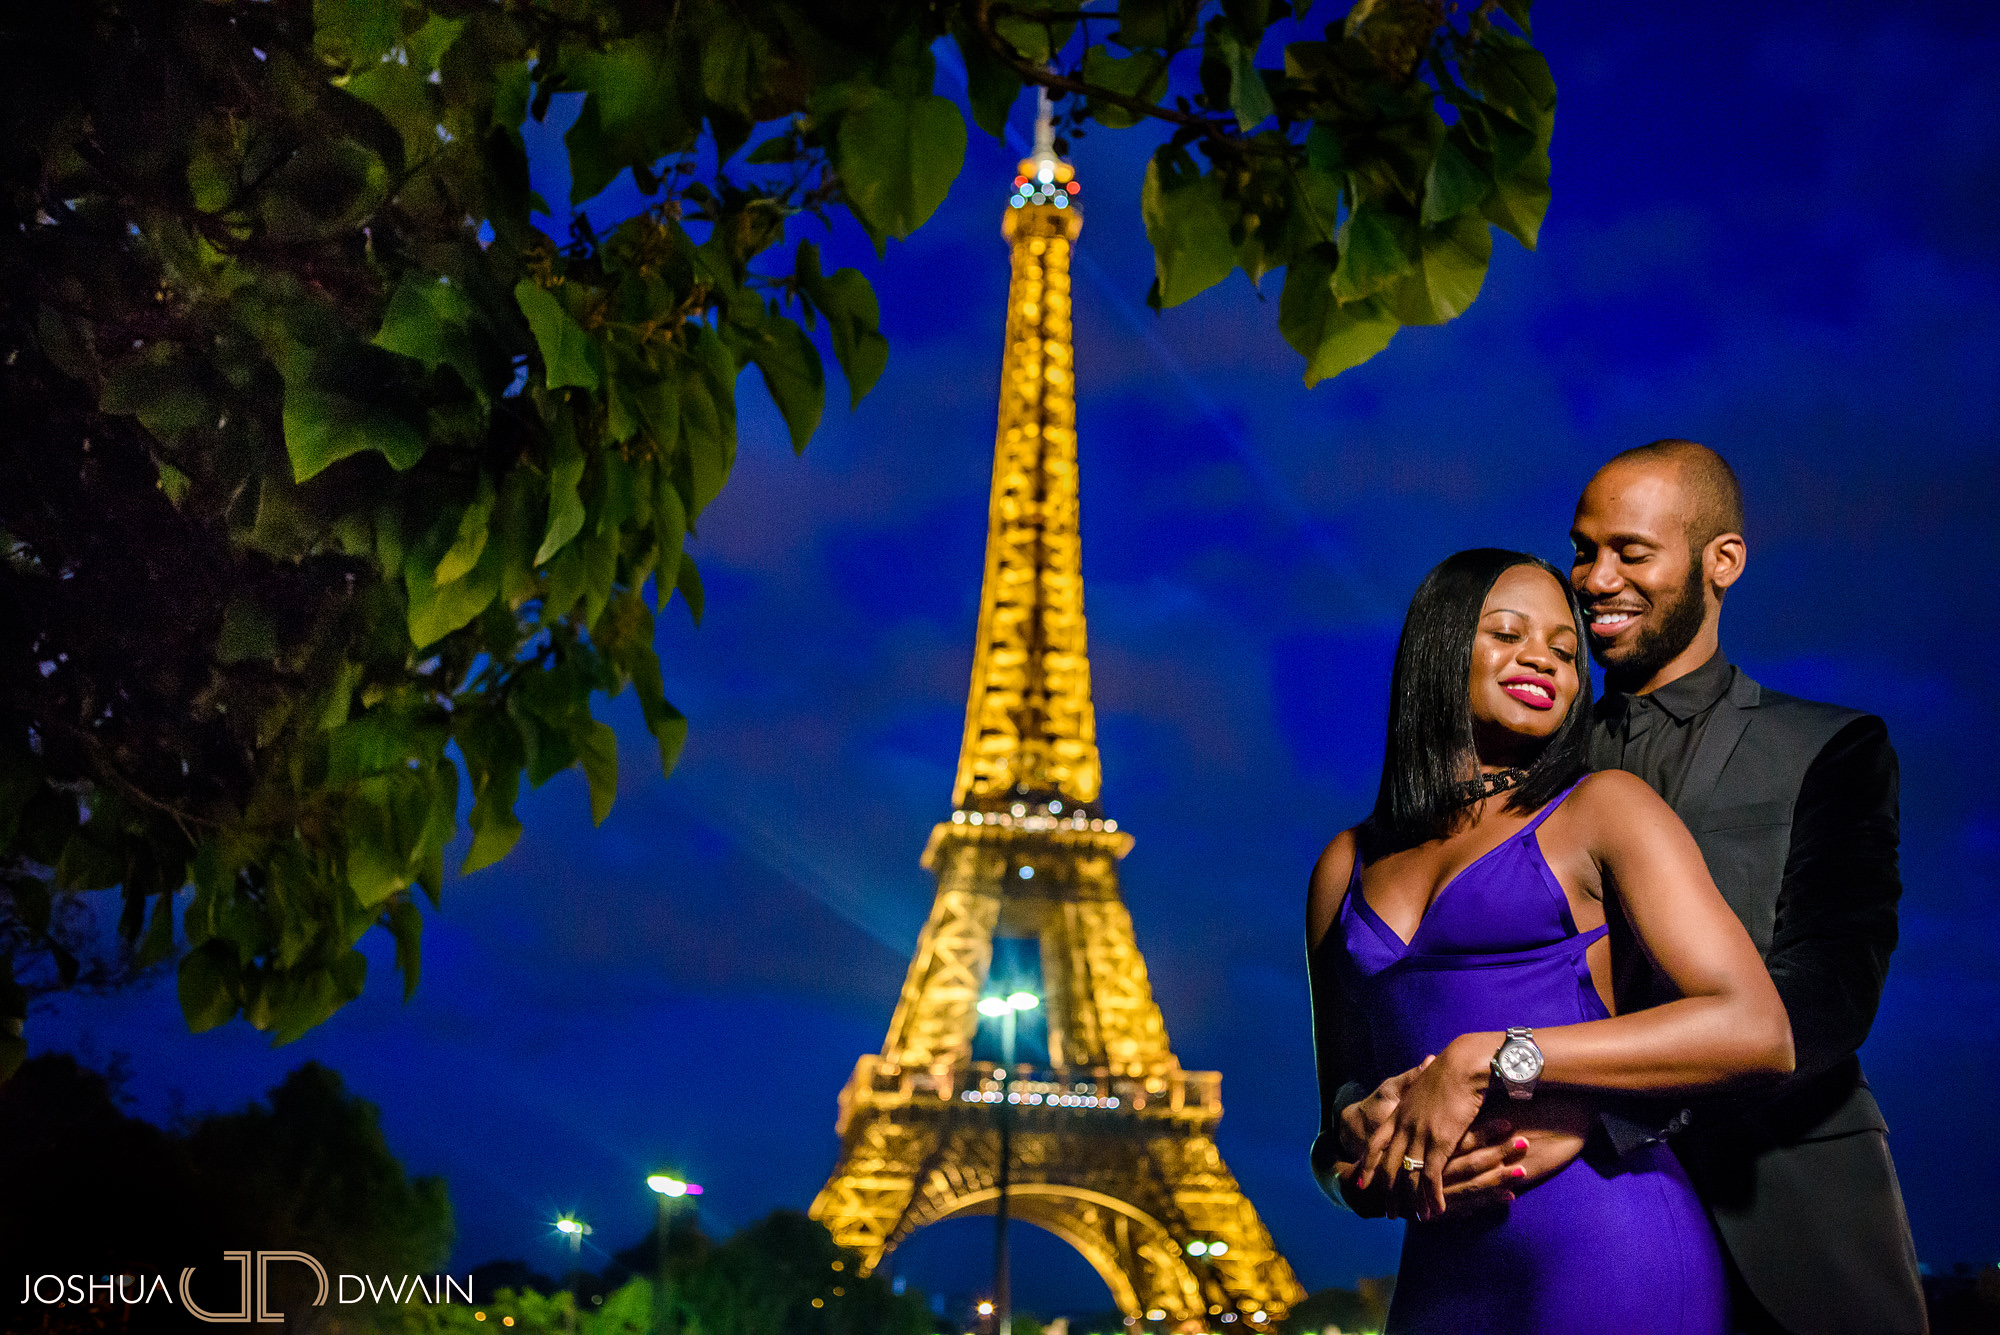 joshua-dwain-engagement-gallery-040